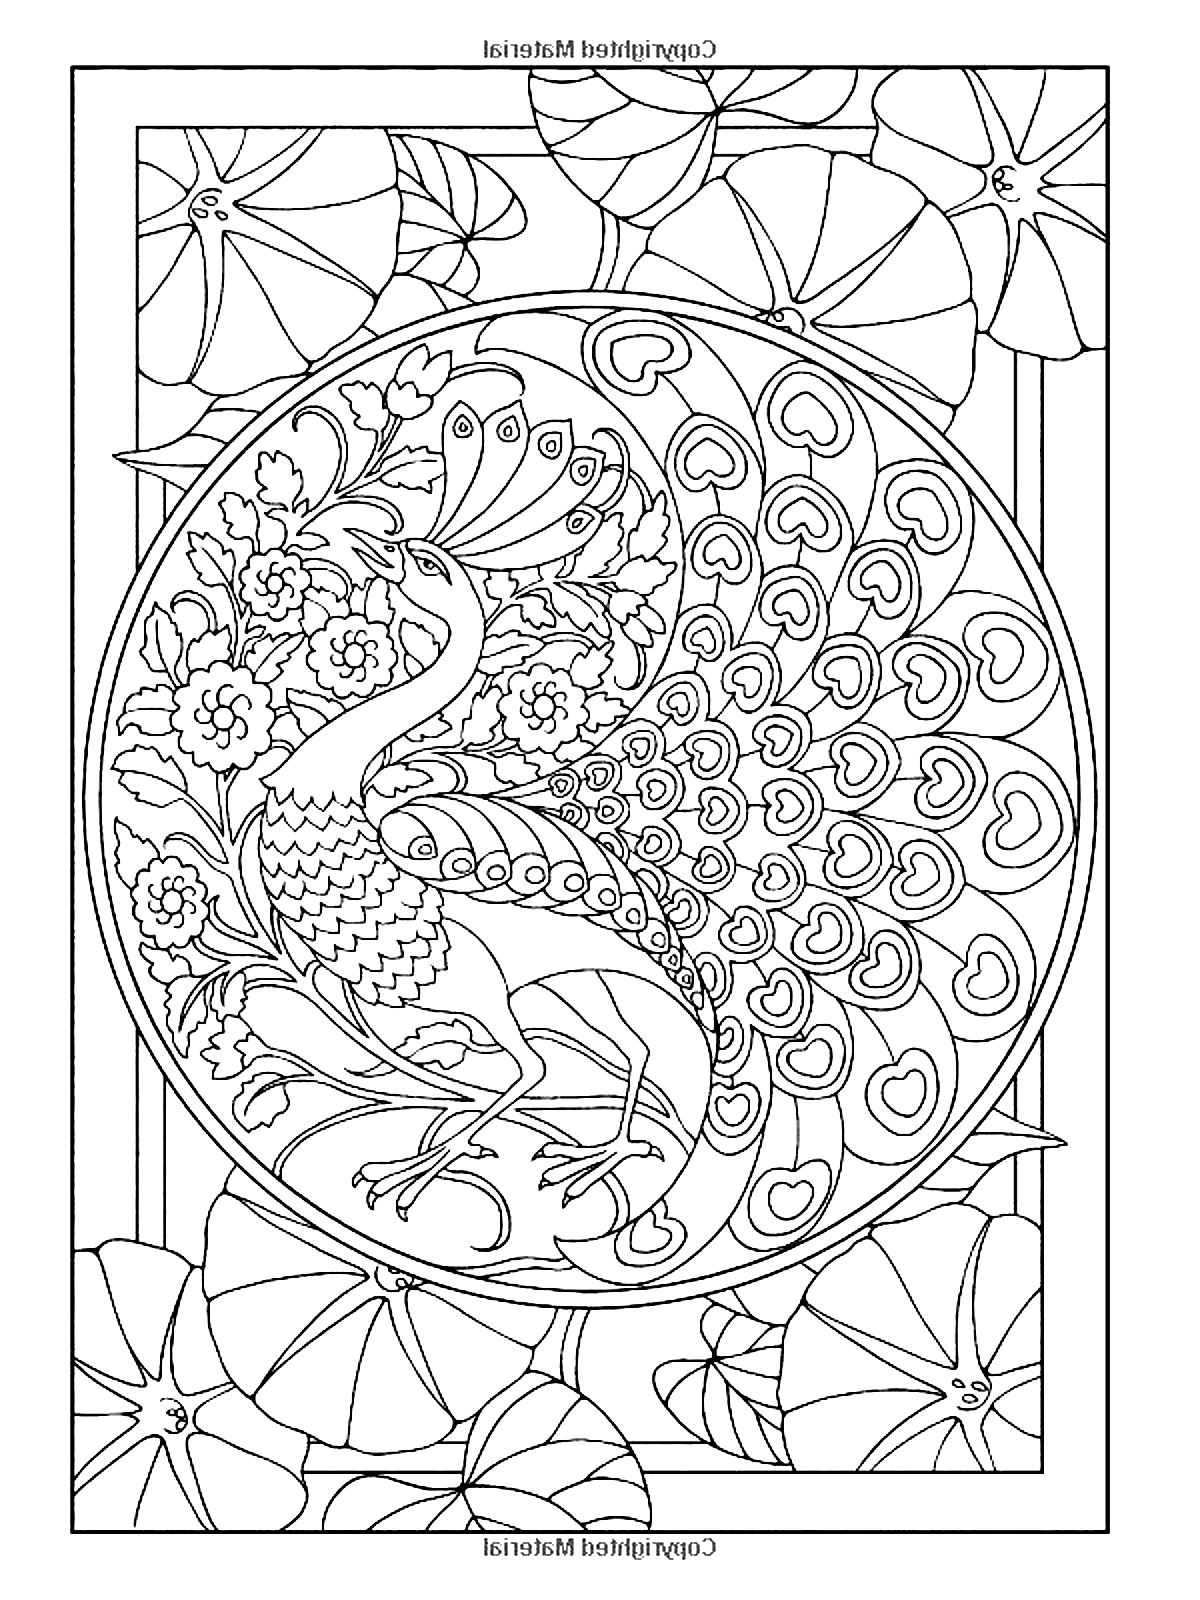 coloring art pages pop art coloring page art projects for kids coloring art pages